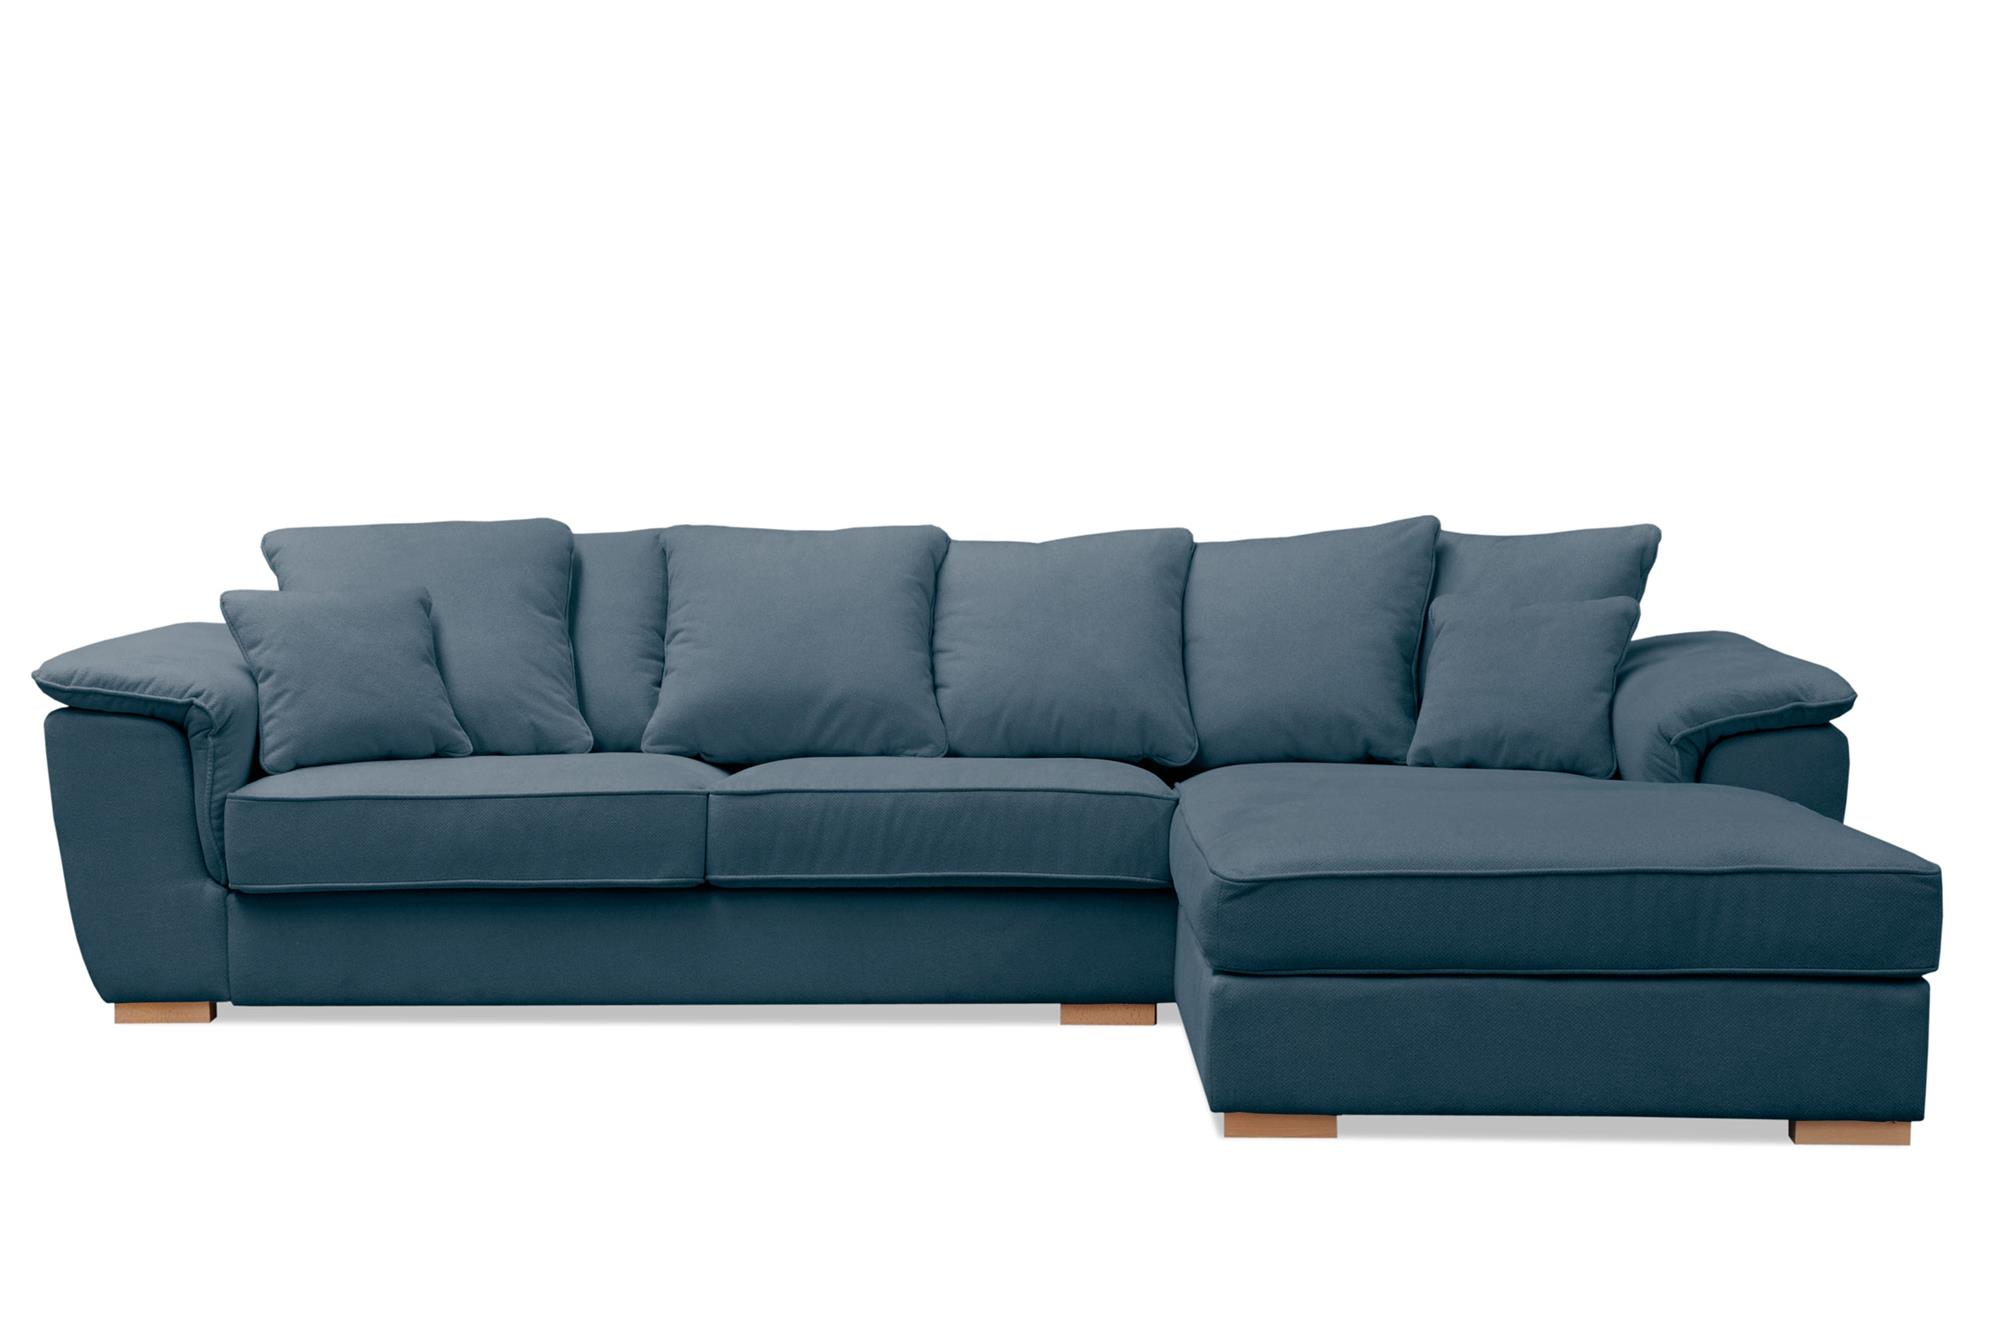 Sofa Conforama Harry Fundas De Sofa Conforama Amazing Gallery Of Elegante